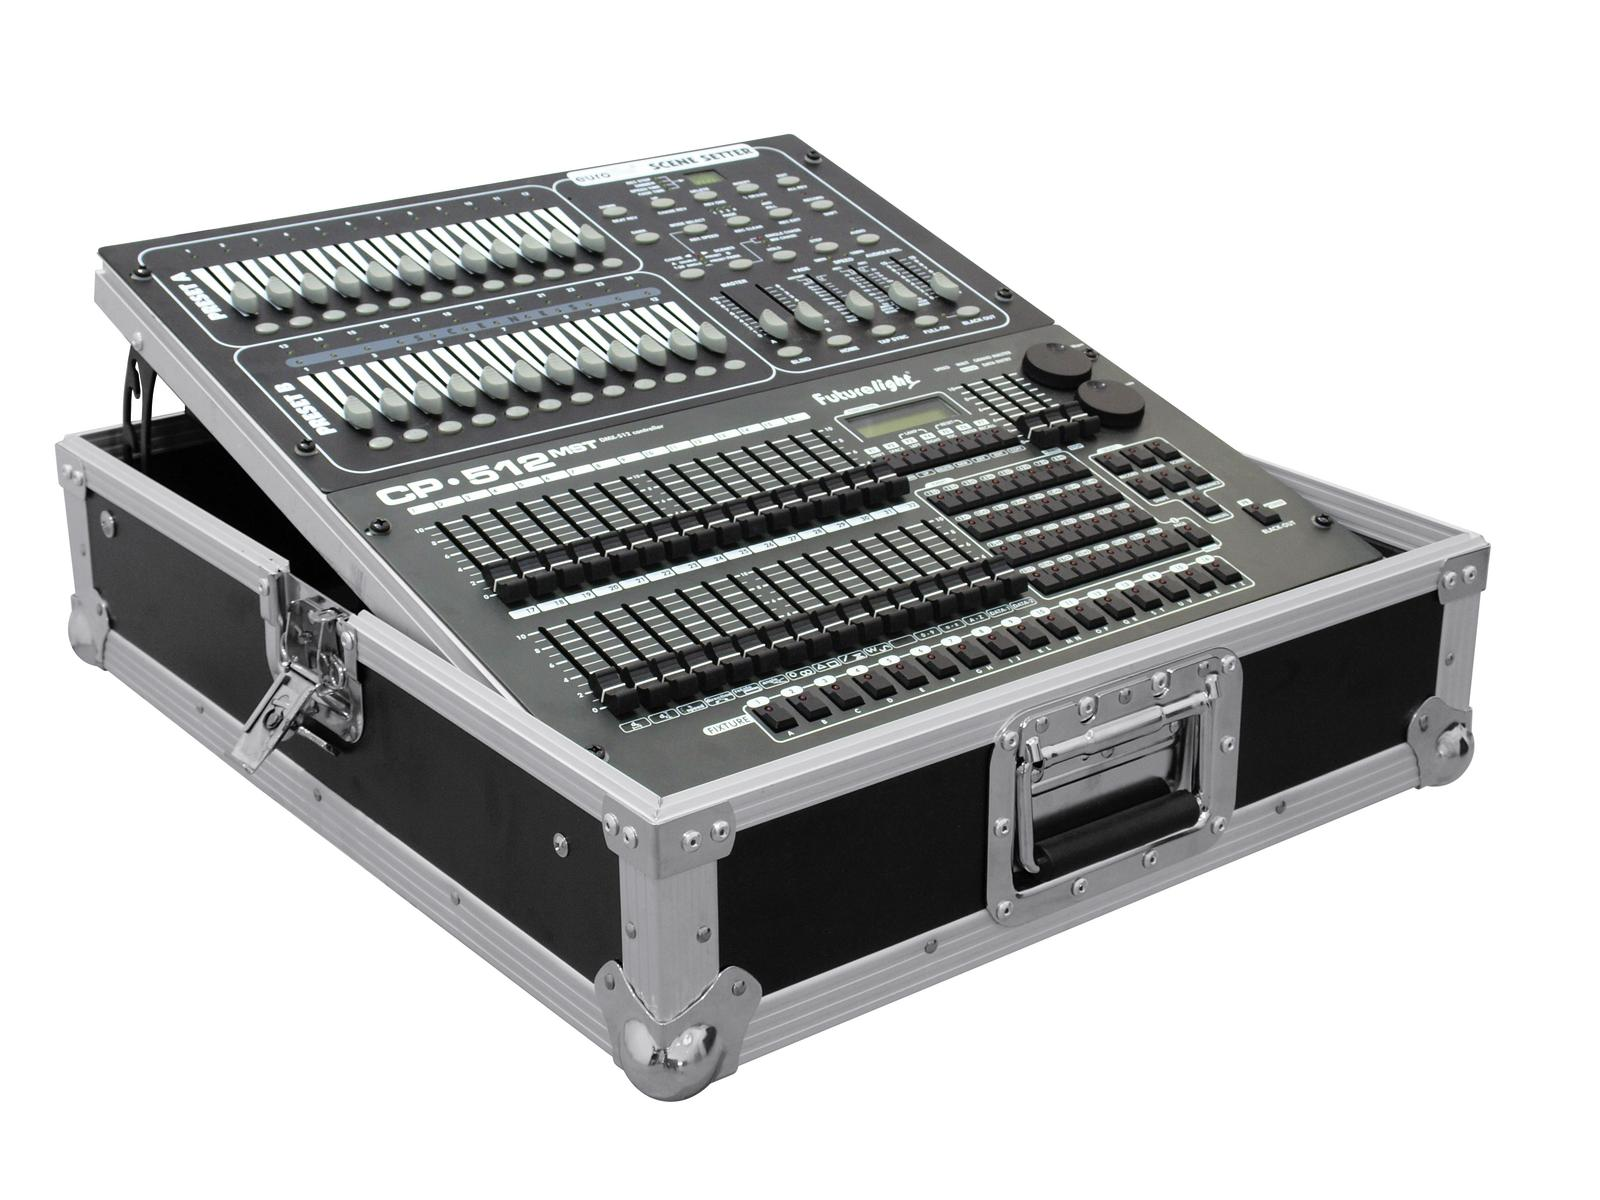 Flight Case Custodia per Dj Mixer Audio Luci Inclinato 12U Roadinger Pro MCV-19